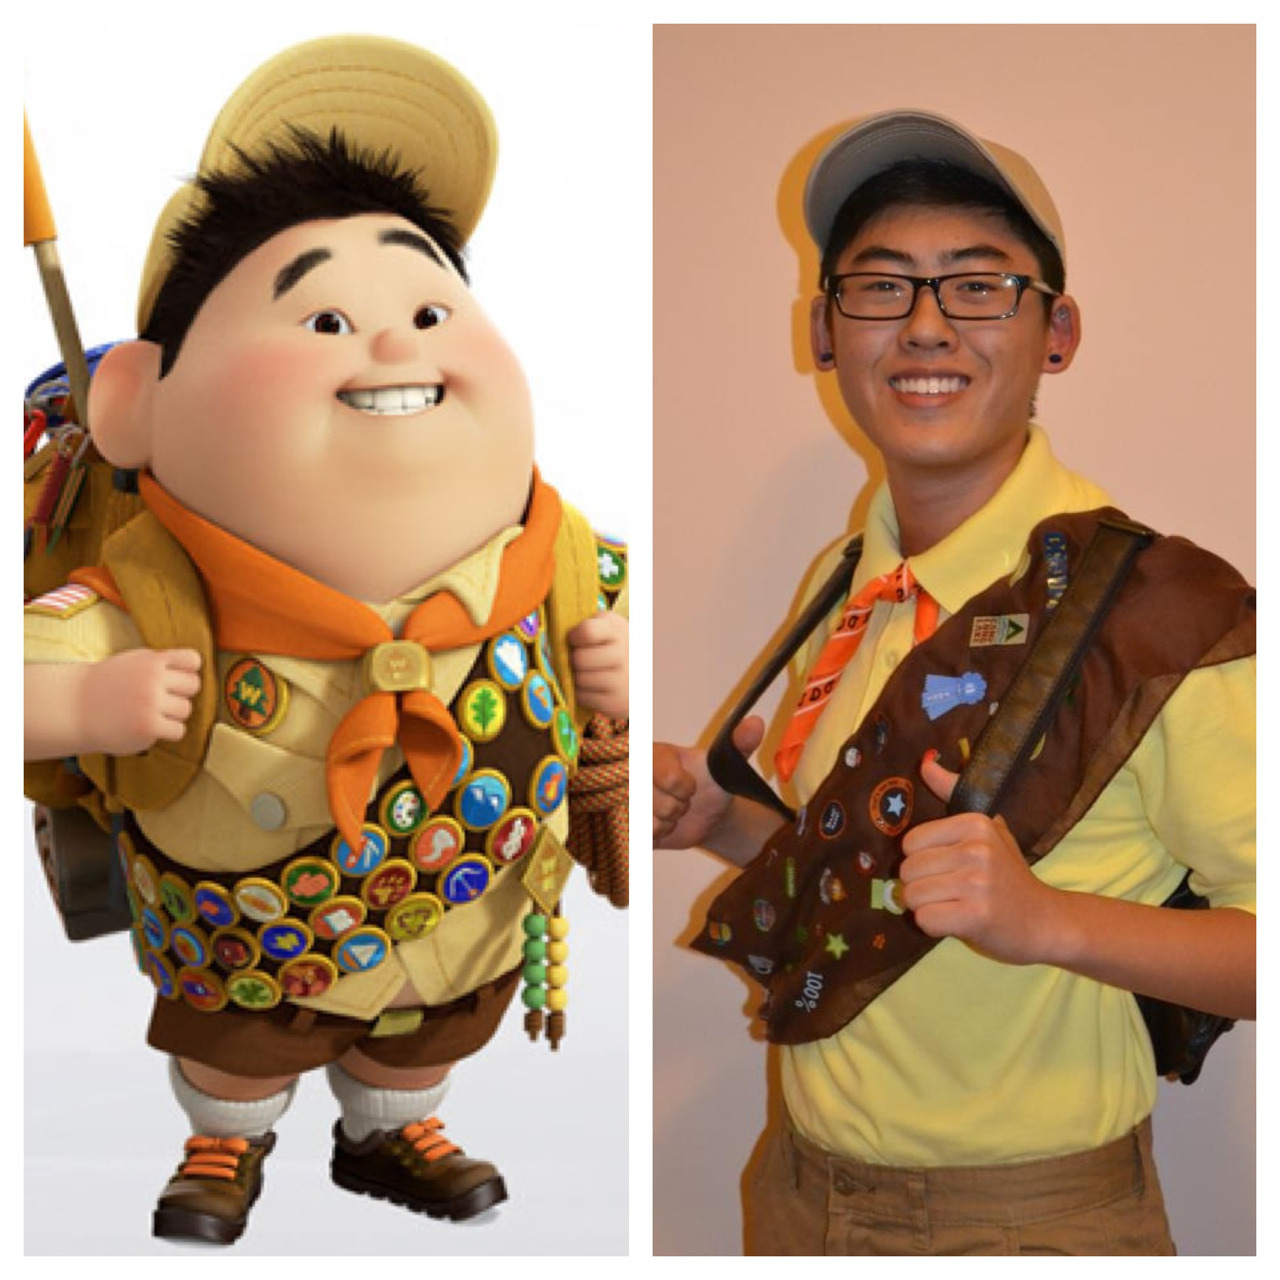 Russell from the movie UP